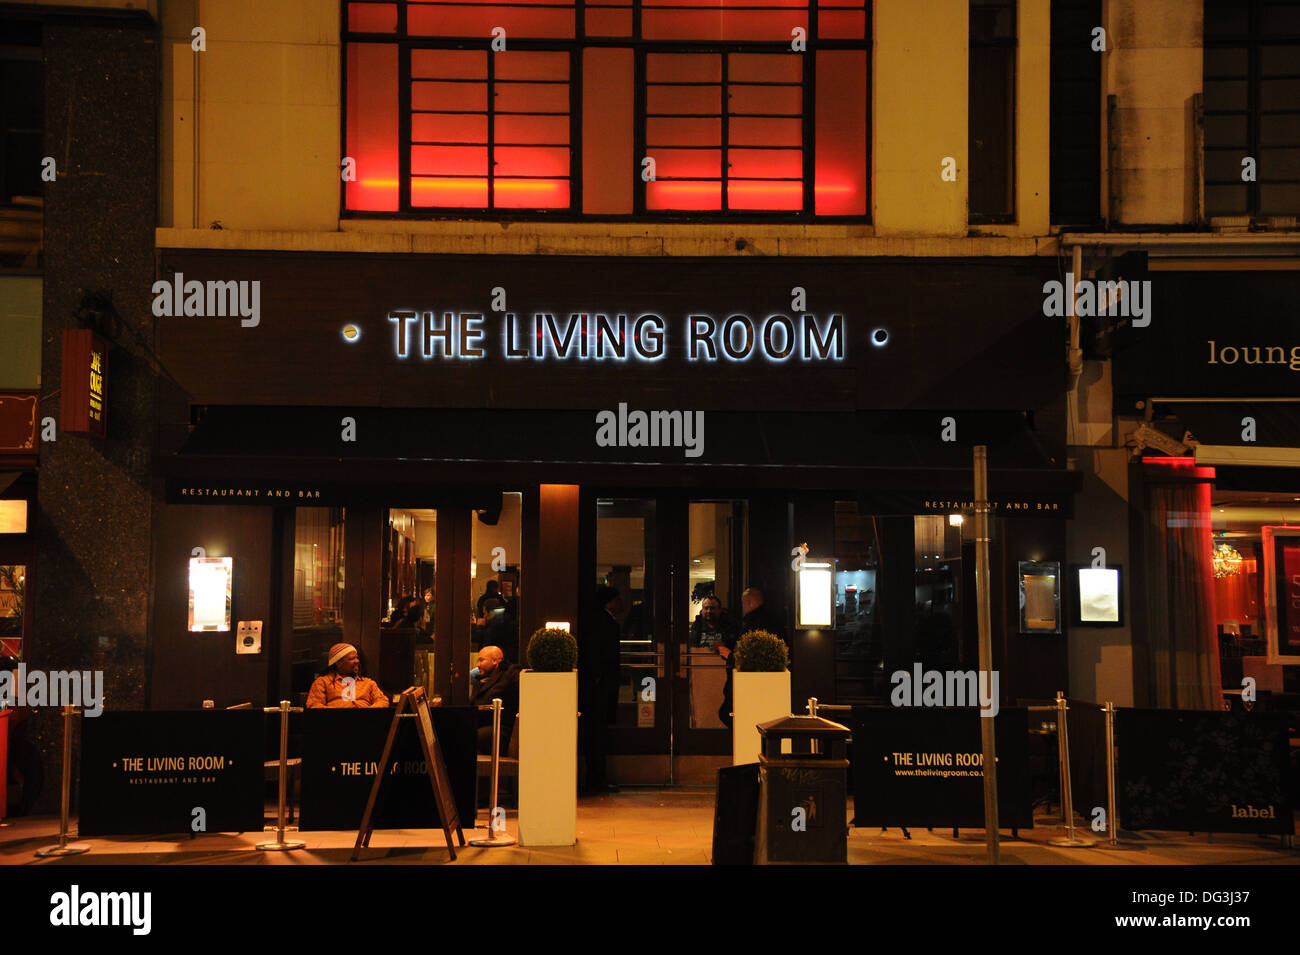 Living Room Restaurant And Bar At Night Manchester, UK